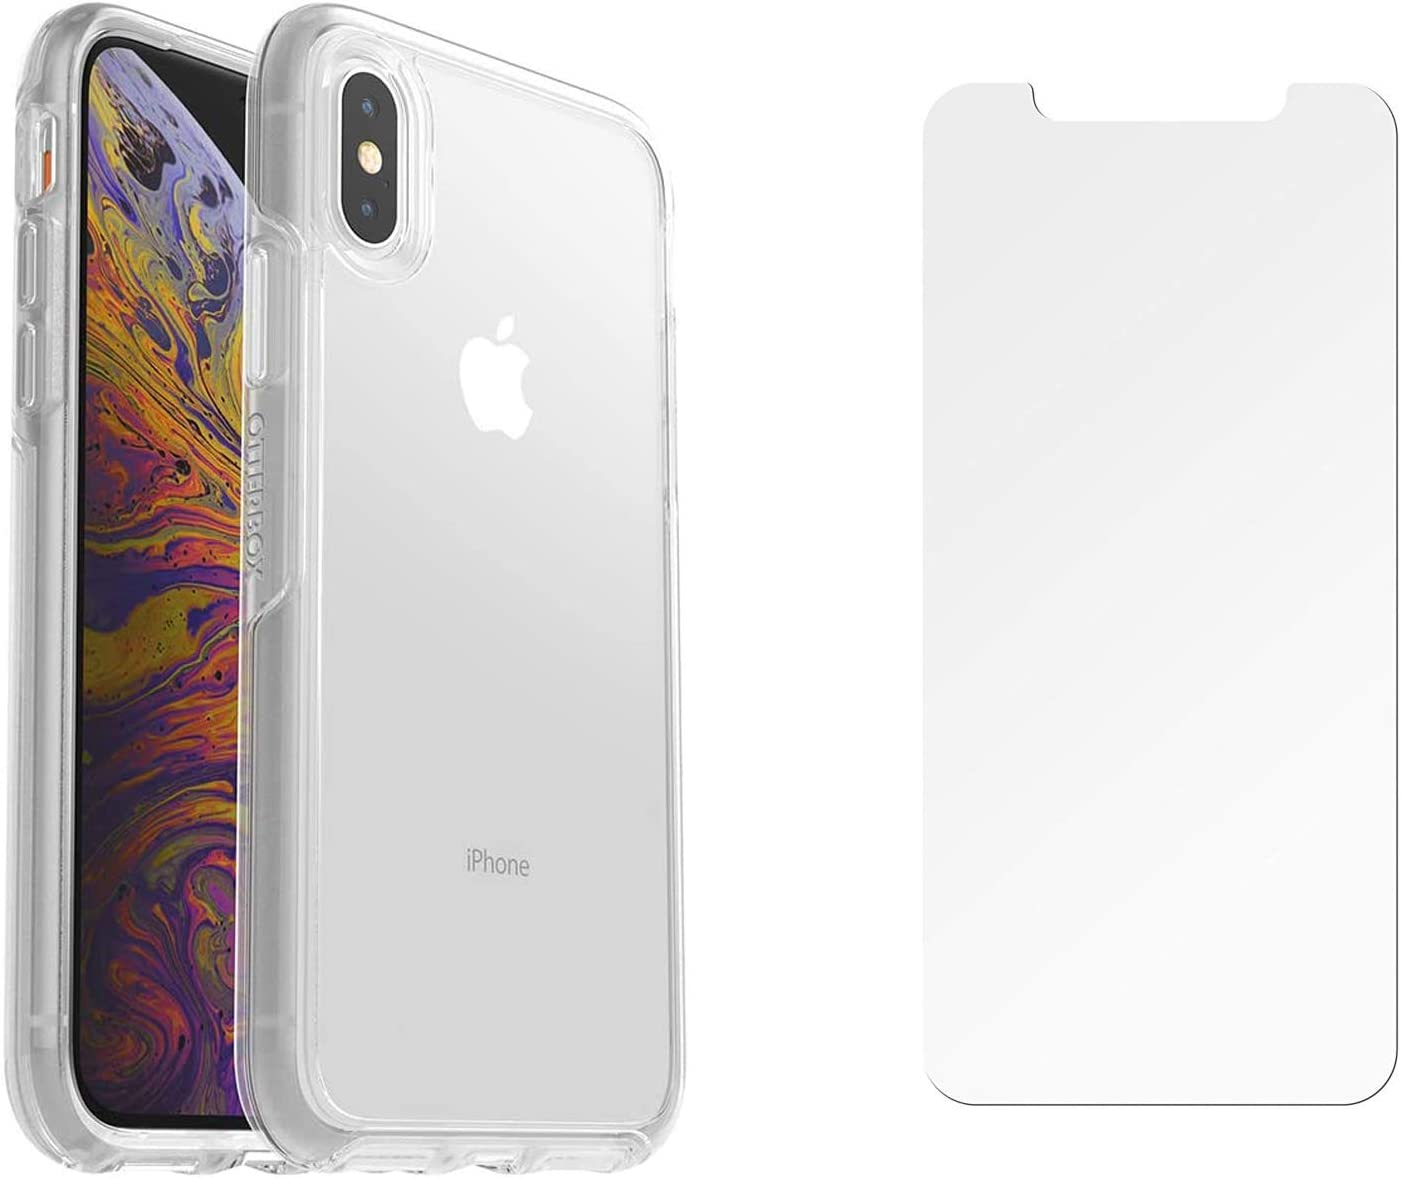 OtterBox Symmetry Clear Series Case for iPhone X & iPhone Xs with Alpha Glass Screen Protector Bundle - Eco-Friendly Packaging - Clear